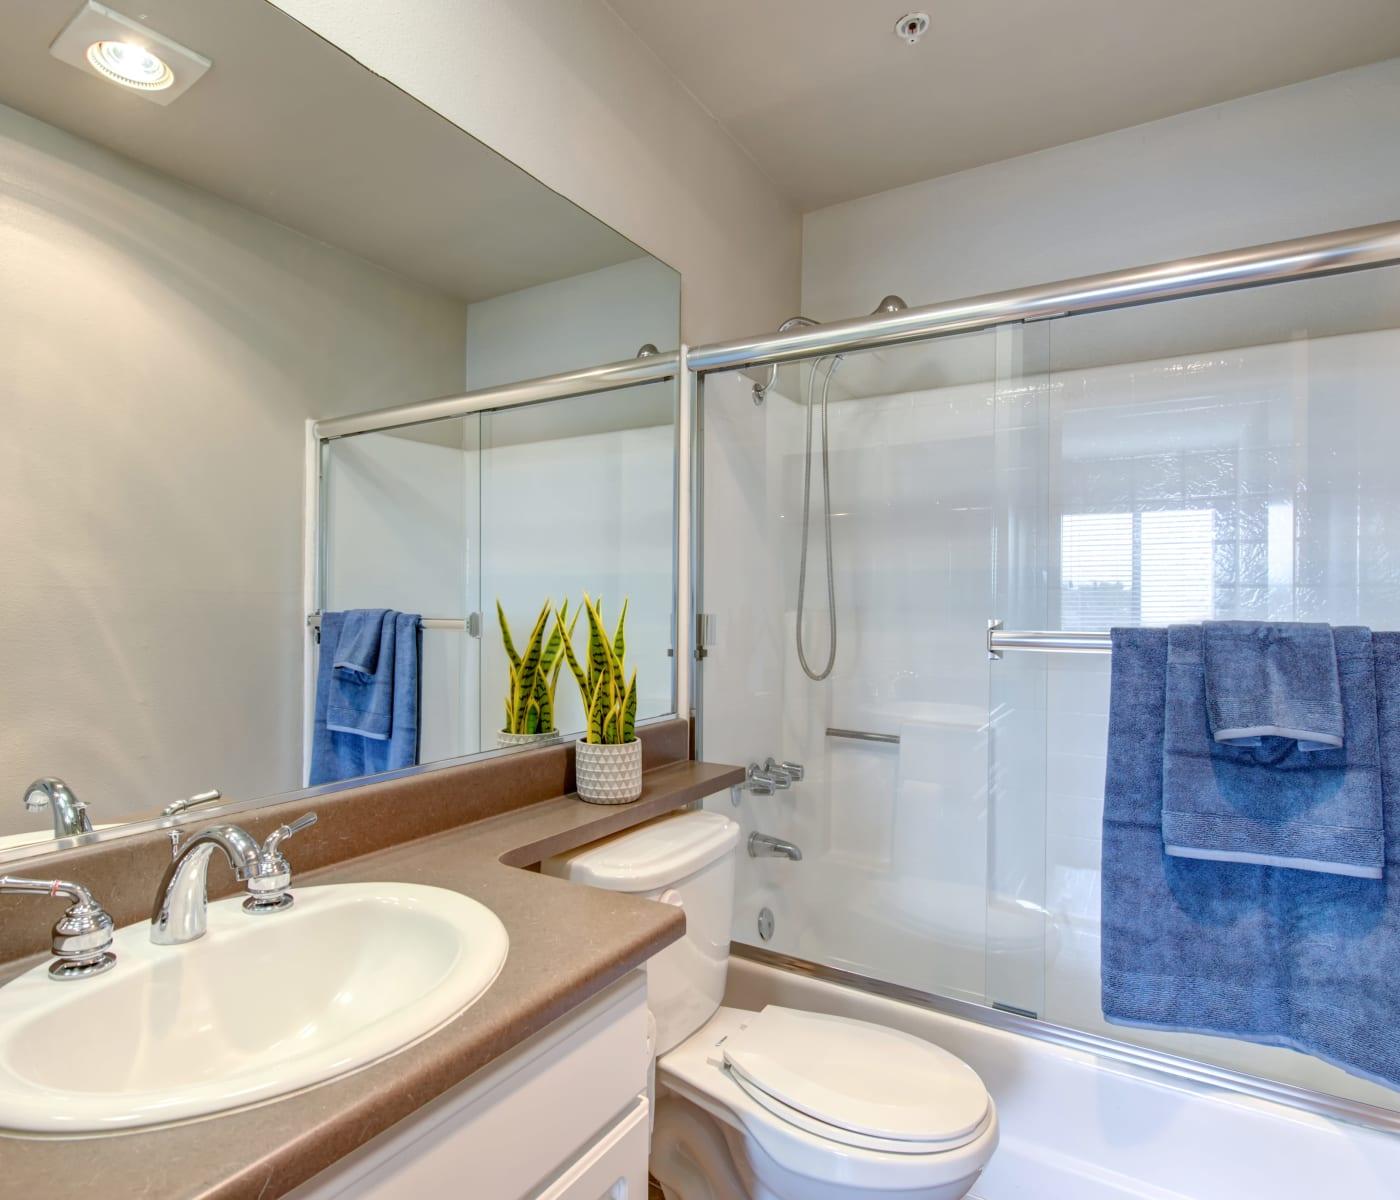 Modern bathroom with wood-style cabinetry in a model home at Vue at Laurel Canyon in Valley Village, California